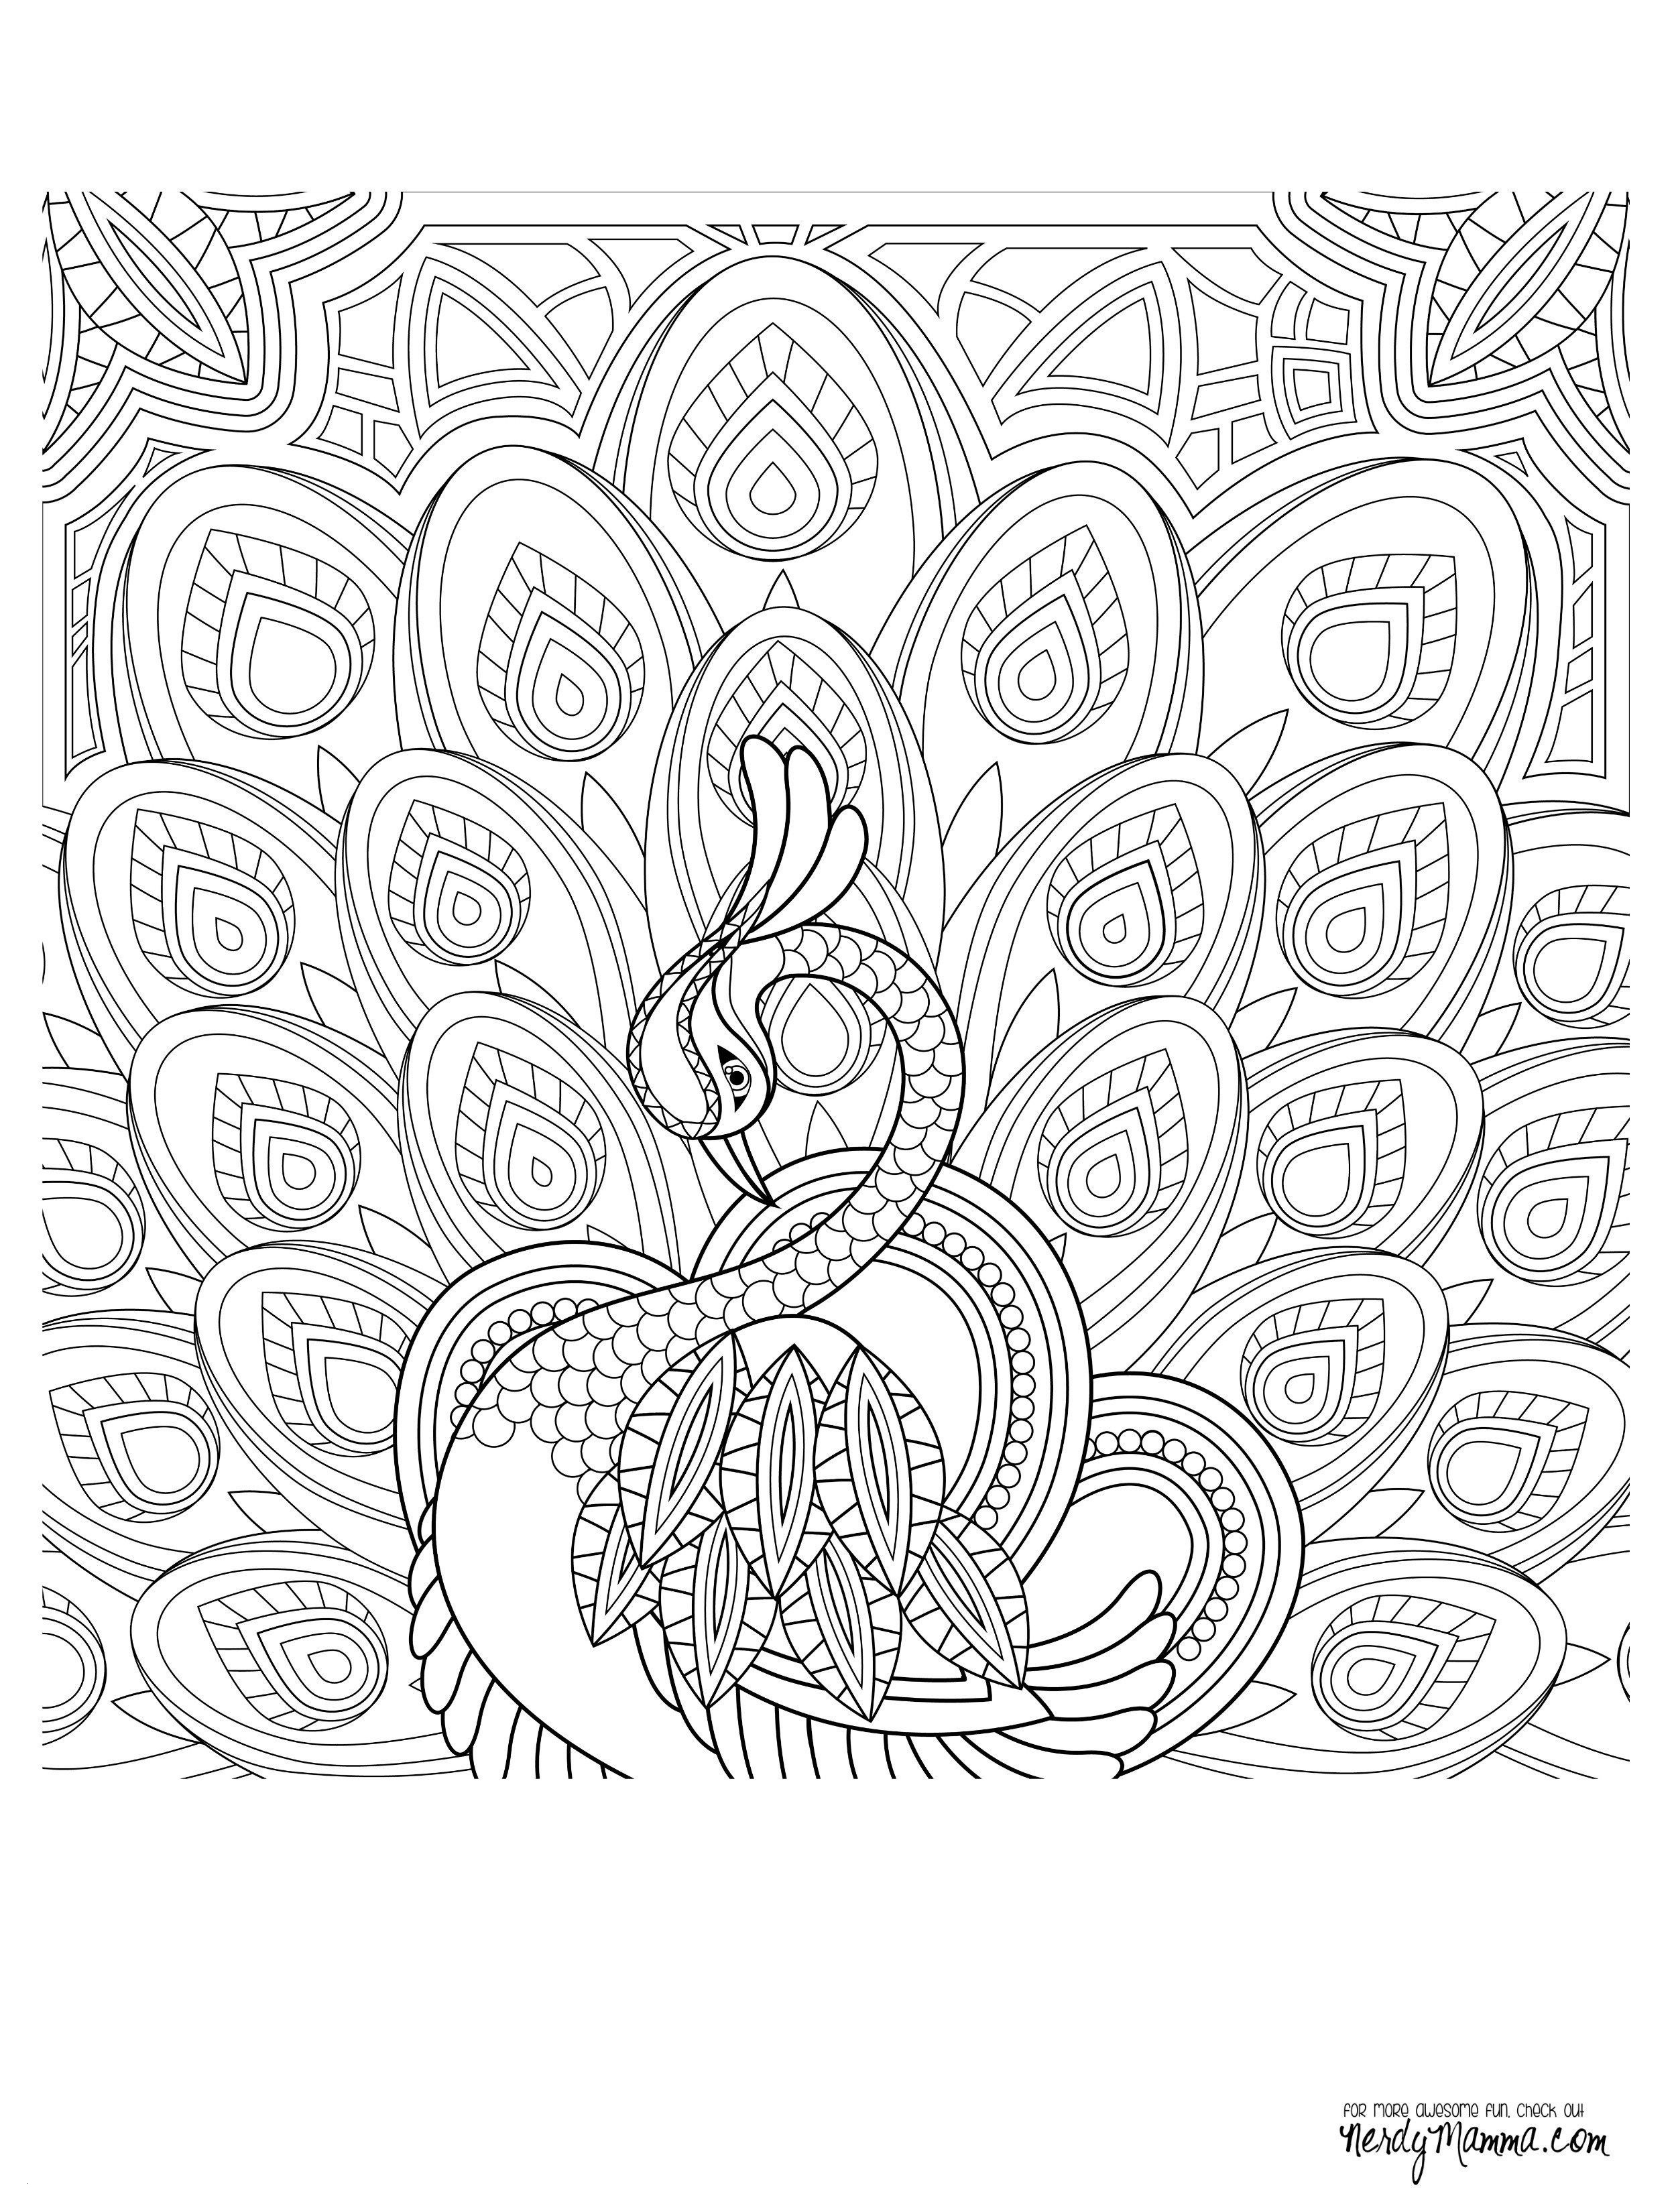 Yom Kippur Coloring Pages  Collection 19t - Free Download